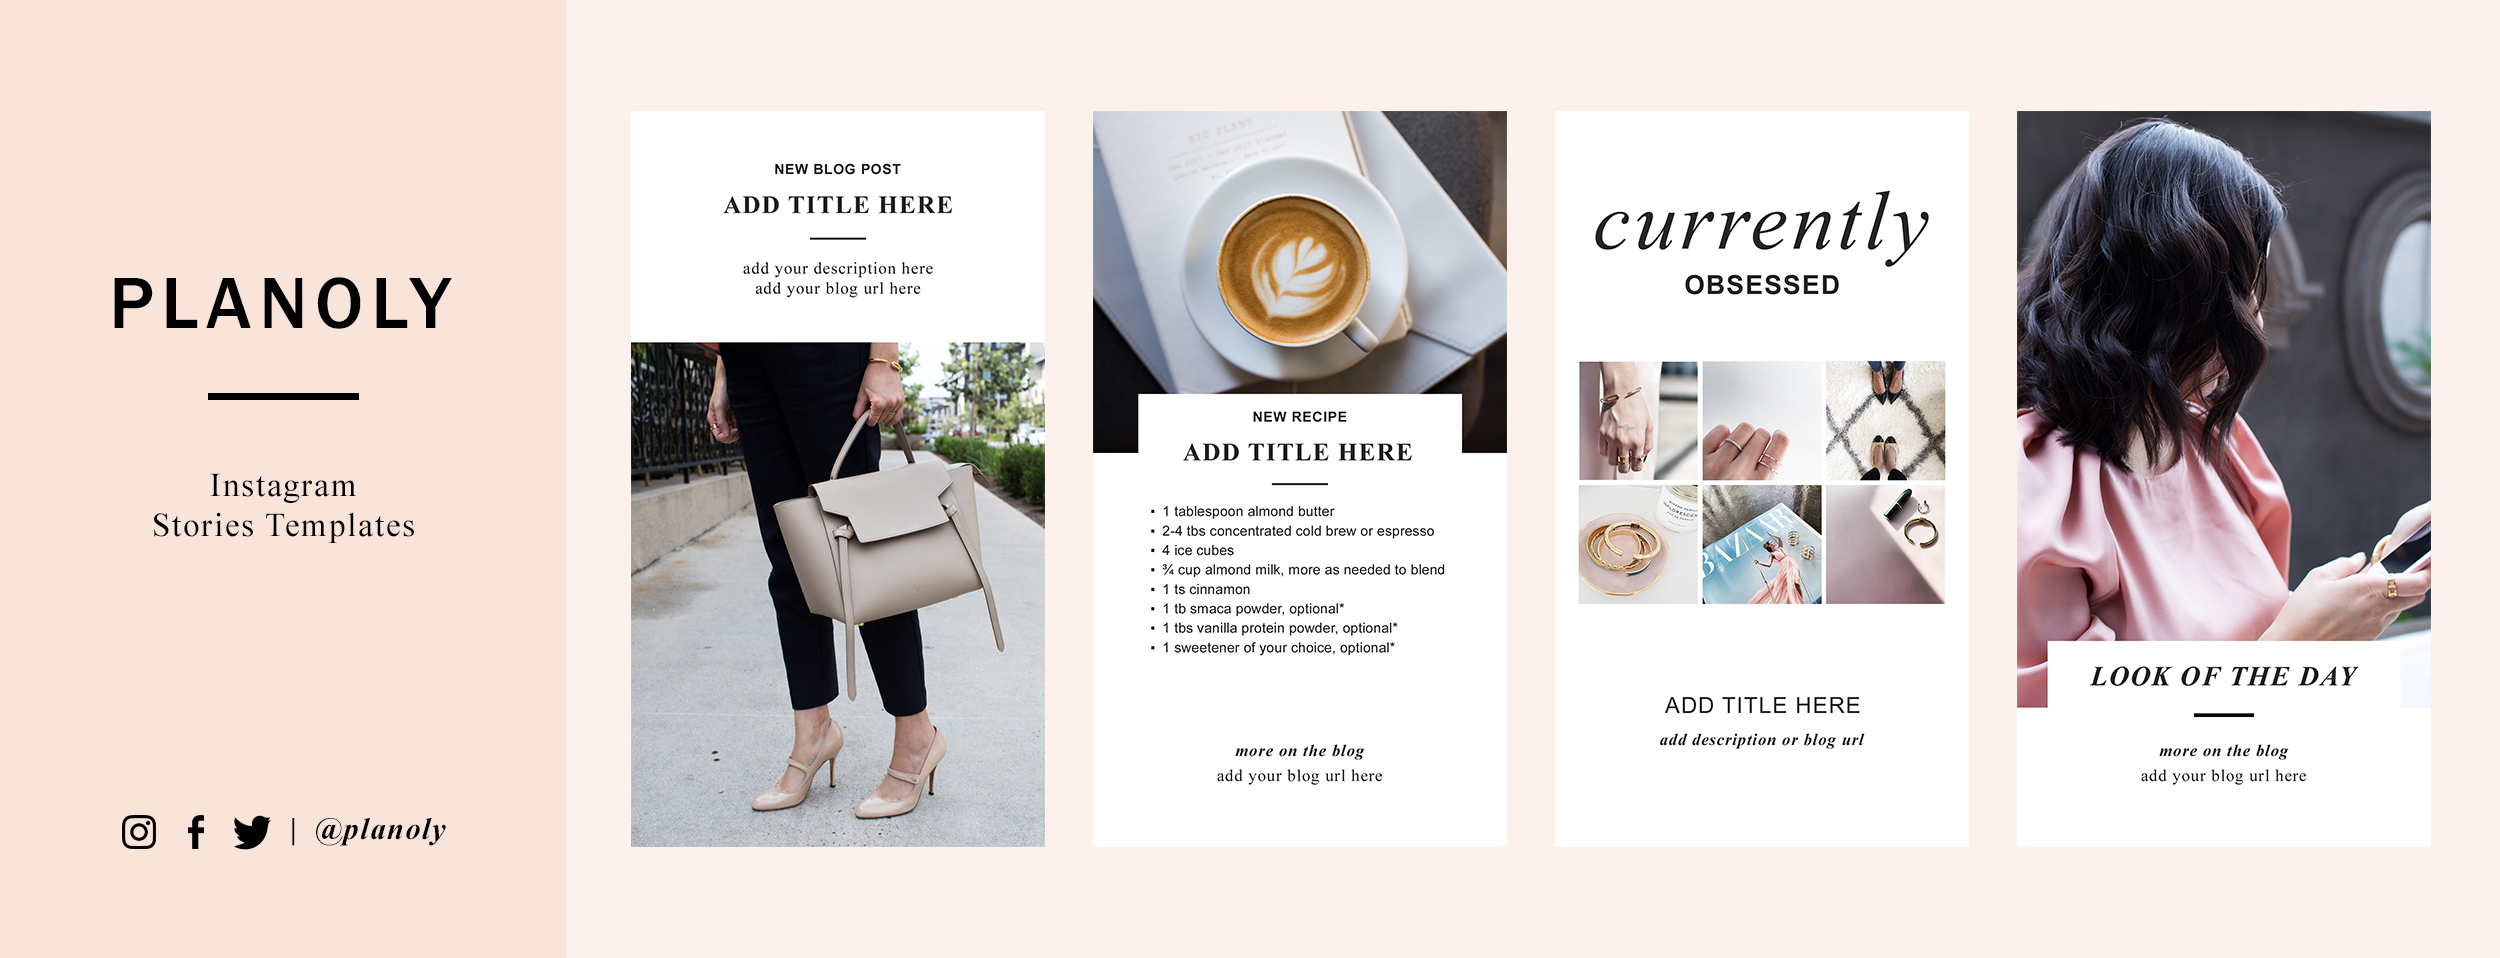 Free Instagram Stories Templates 1